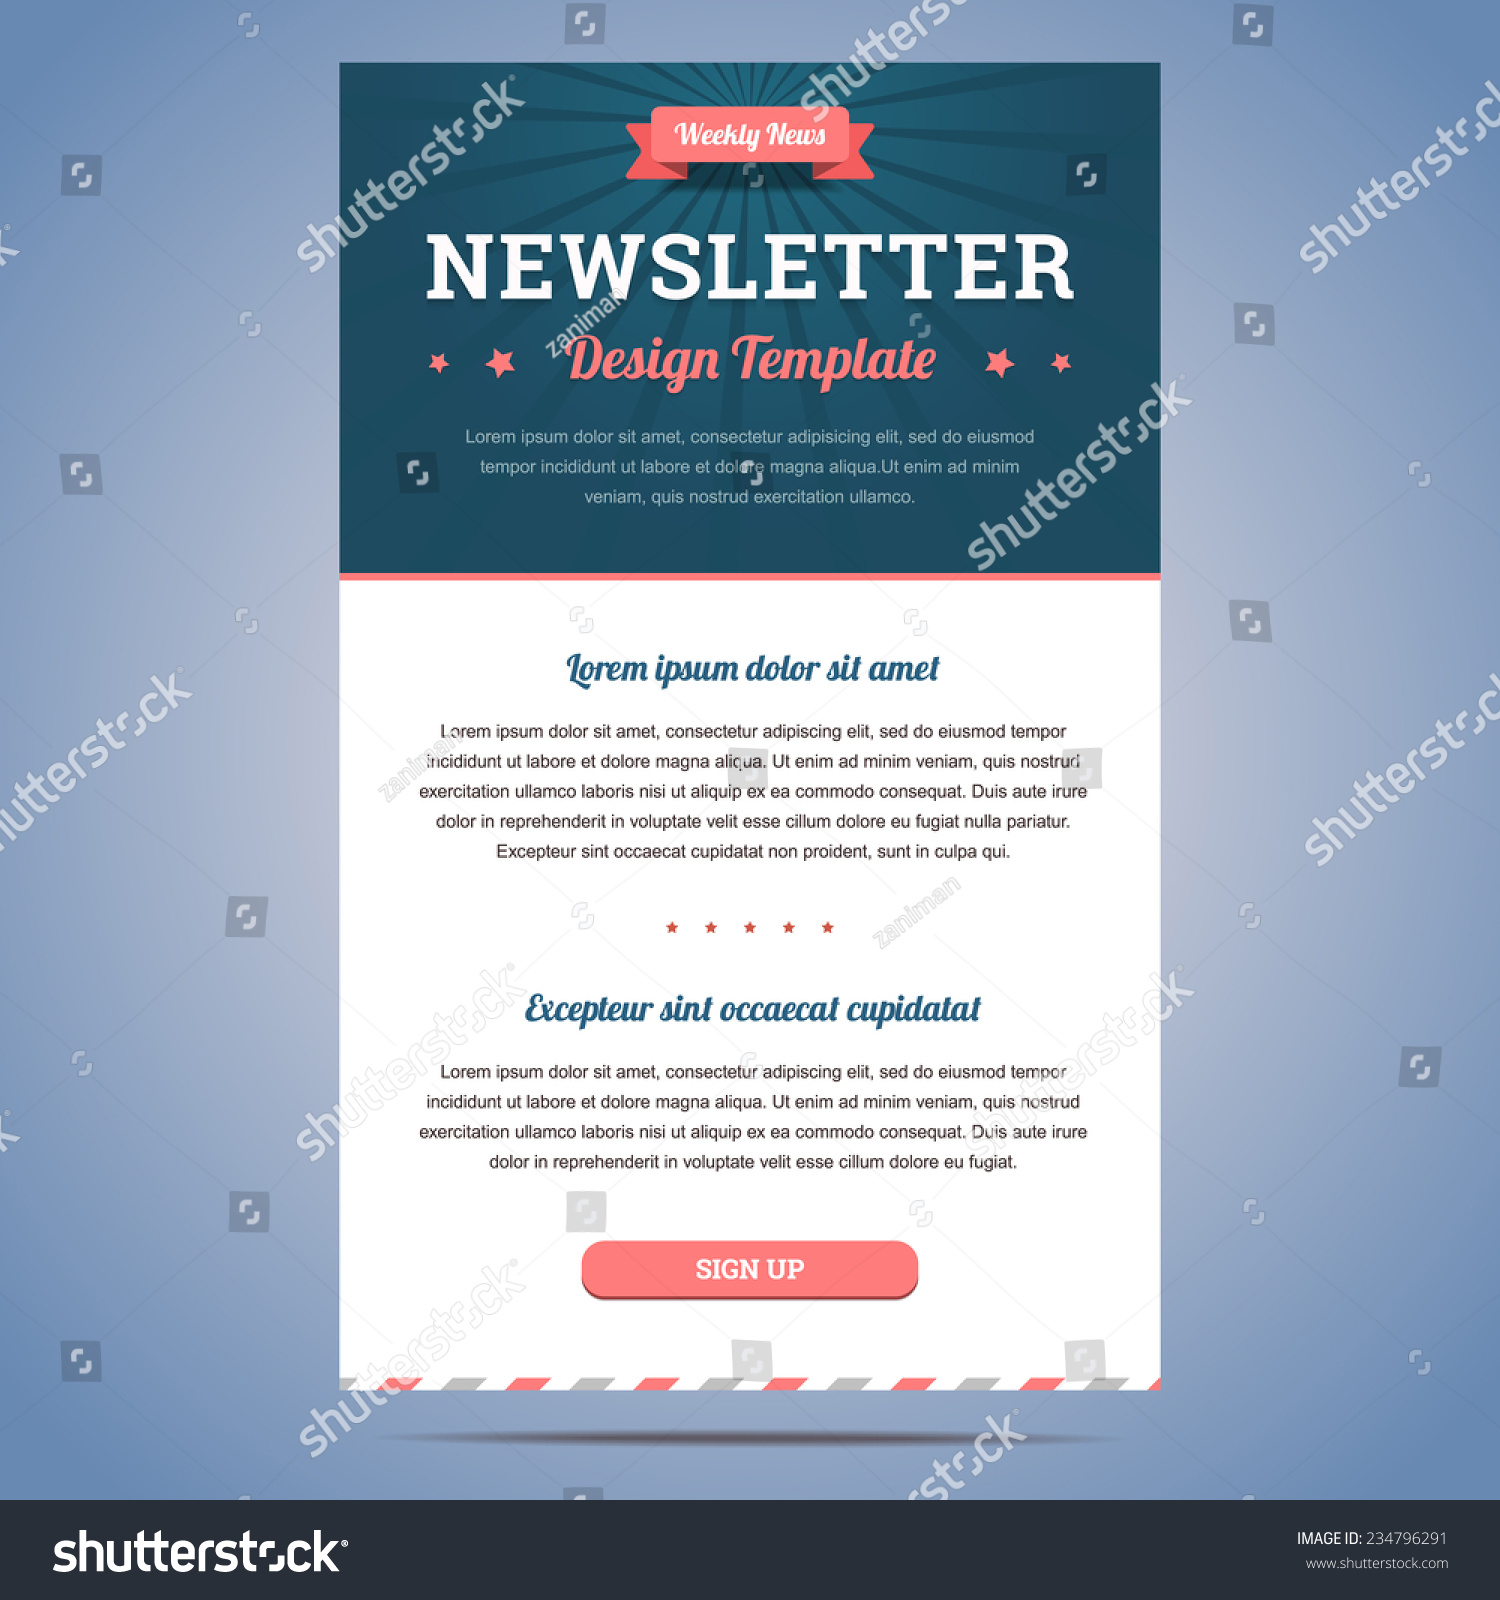 royalty free newsletter design template for weekly 234796291 stock